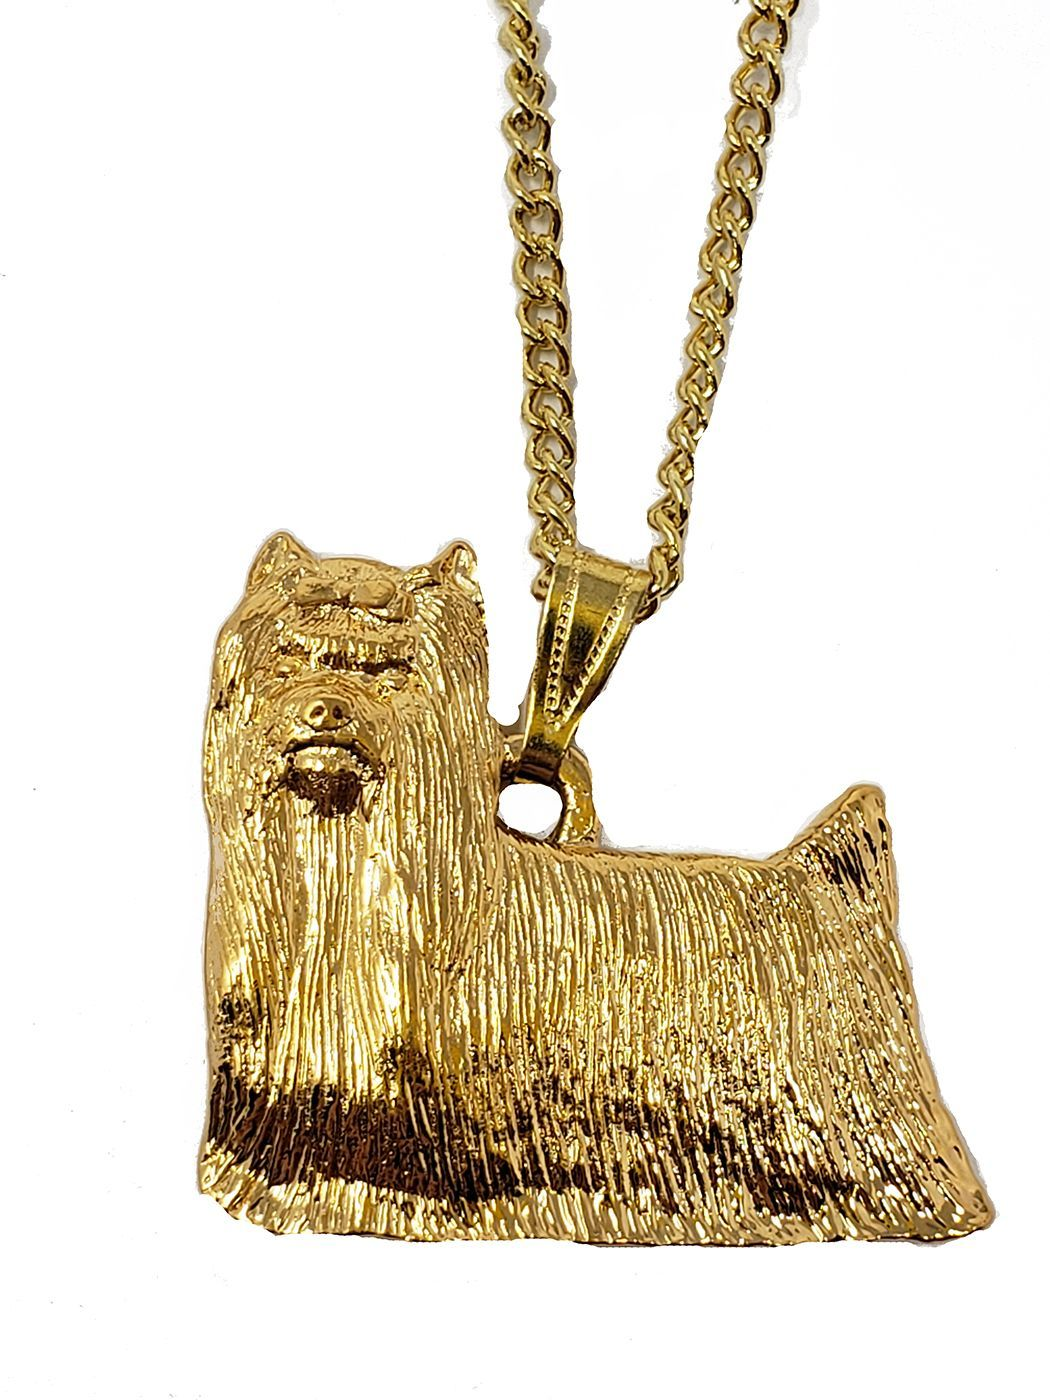 Yorki 24K Gold Plated Pendant